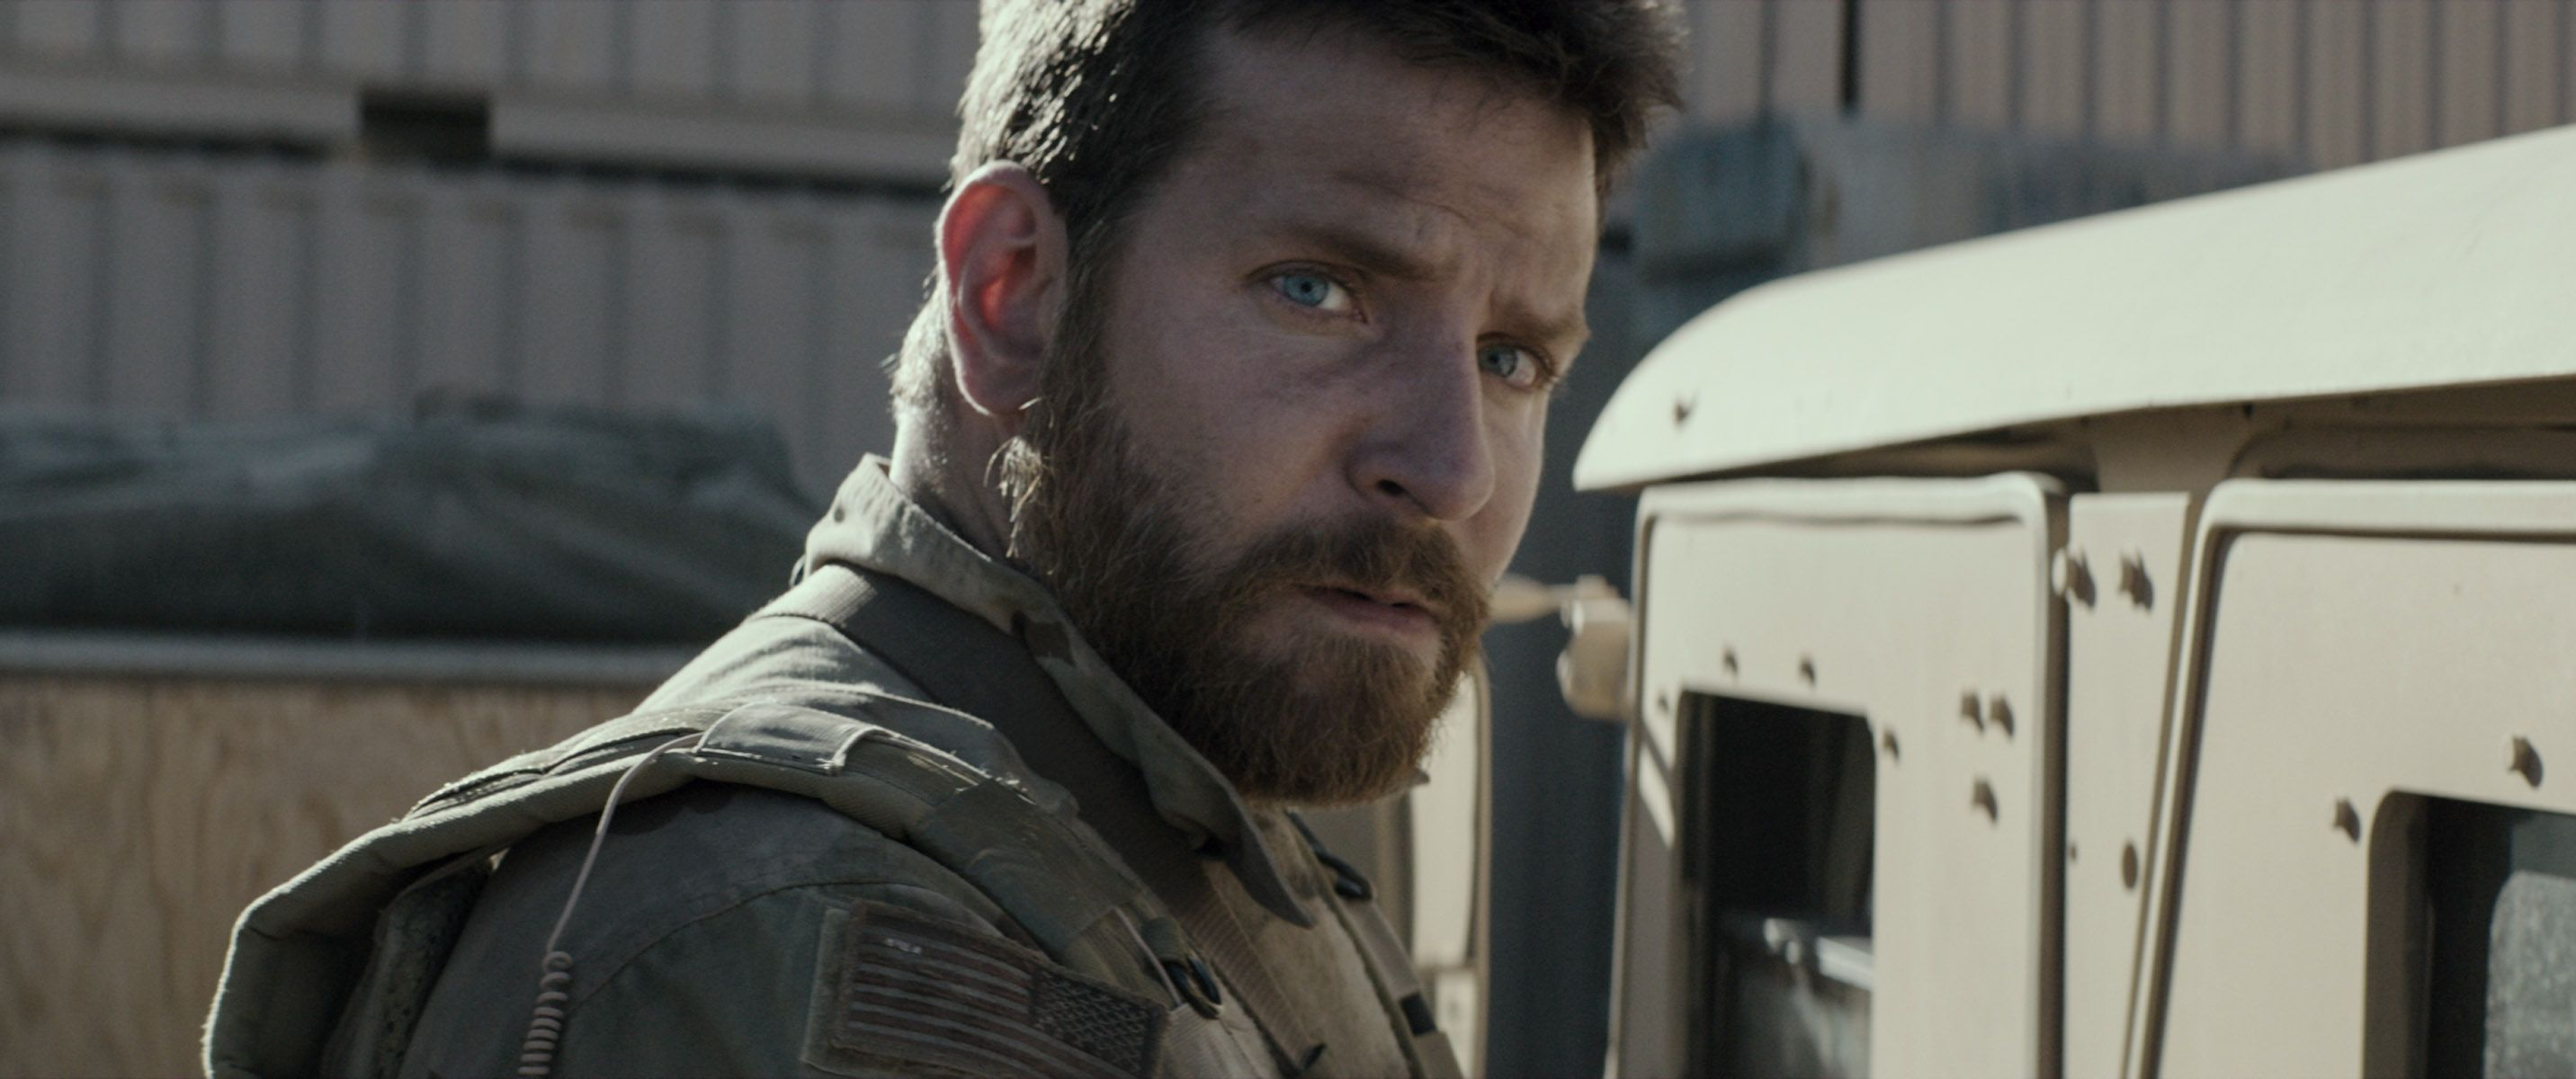 New American Sniper Clip And Images Find Bradley Cooper